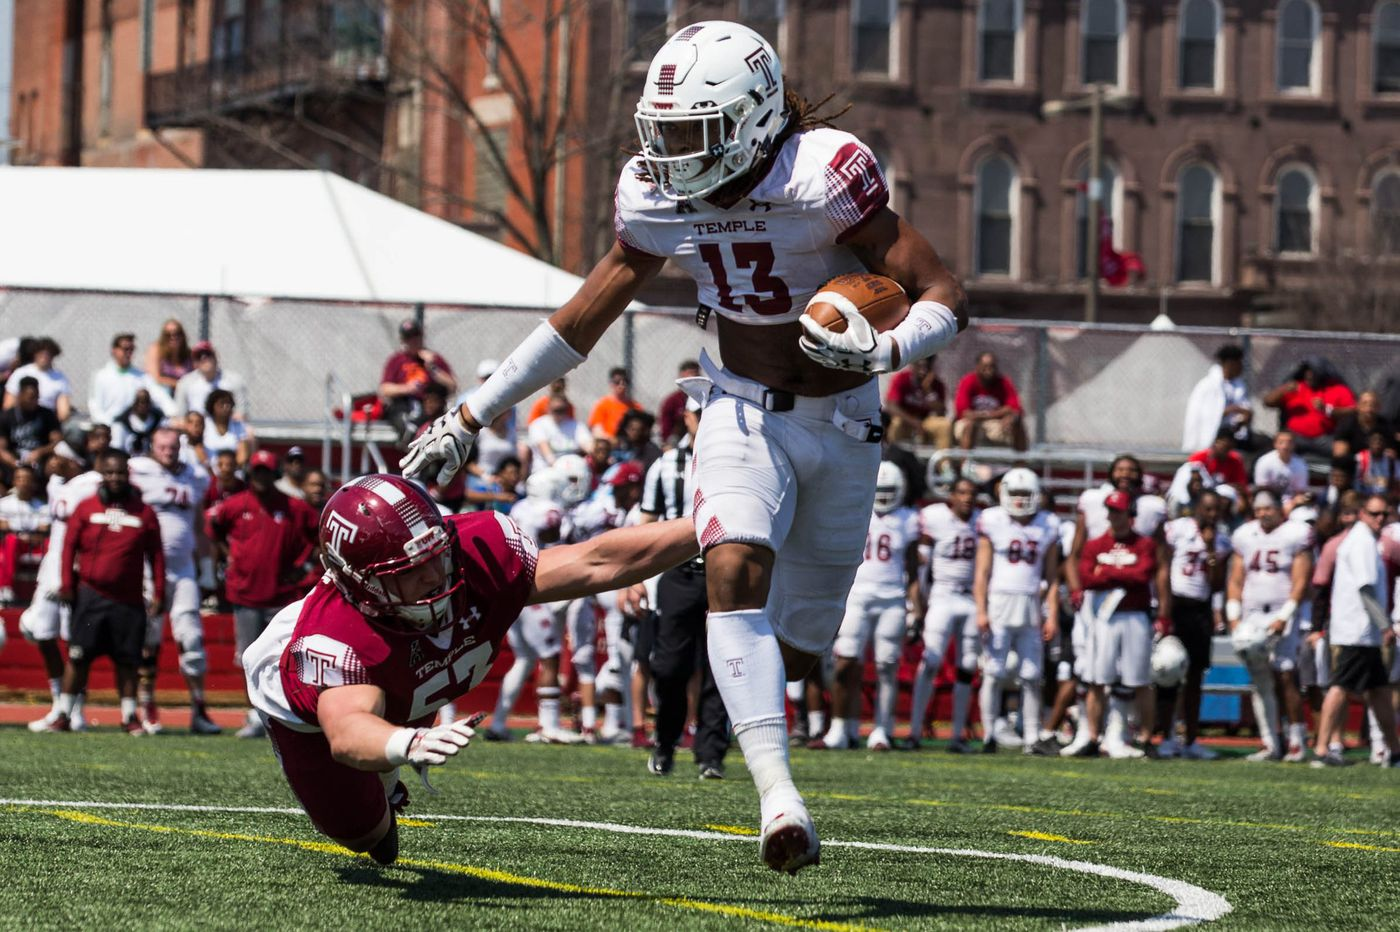 Temple football heads off campus to closed practice at Franklin Field